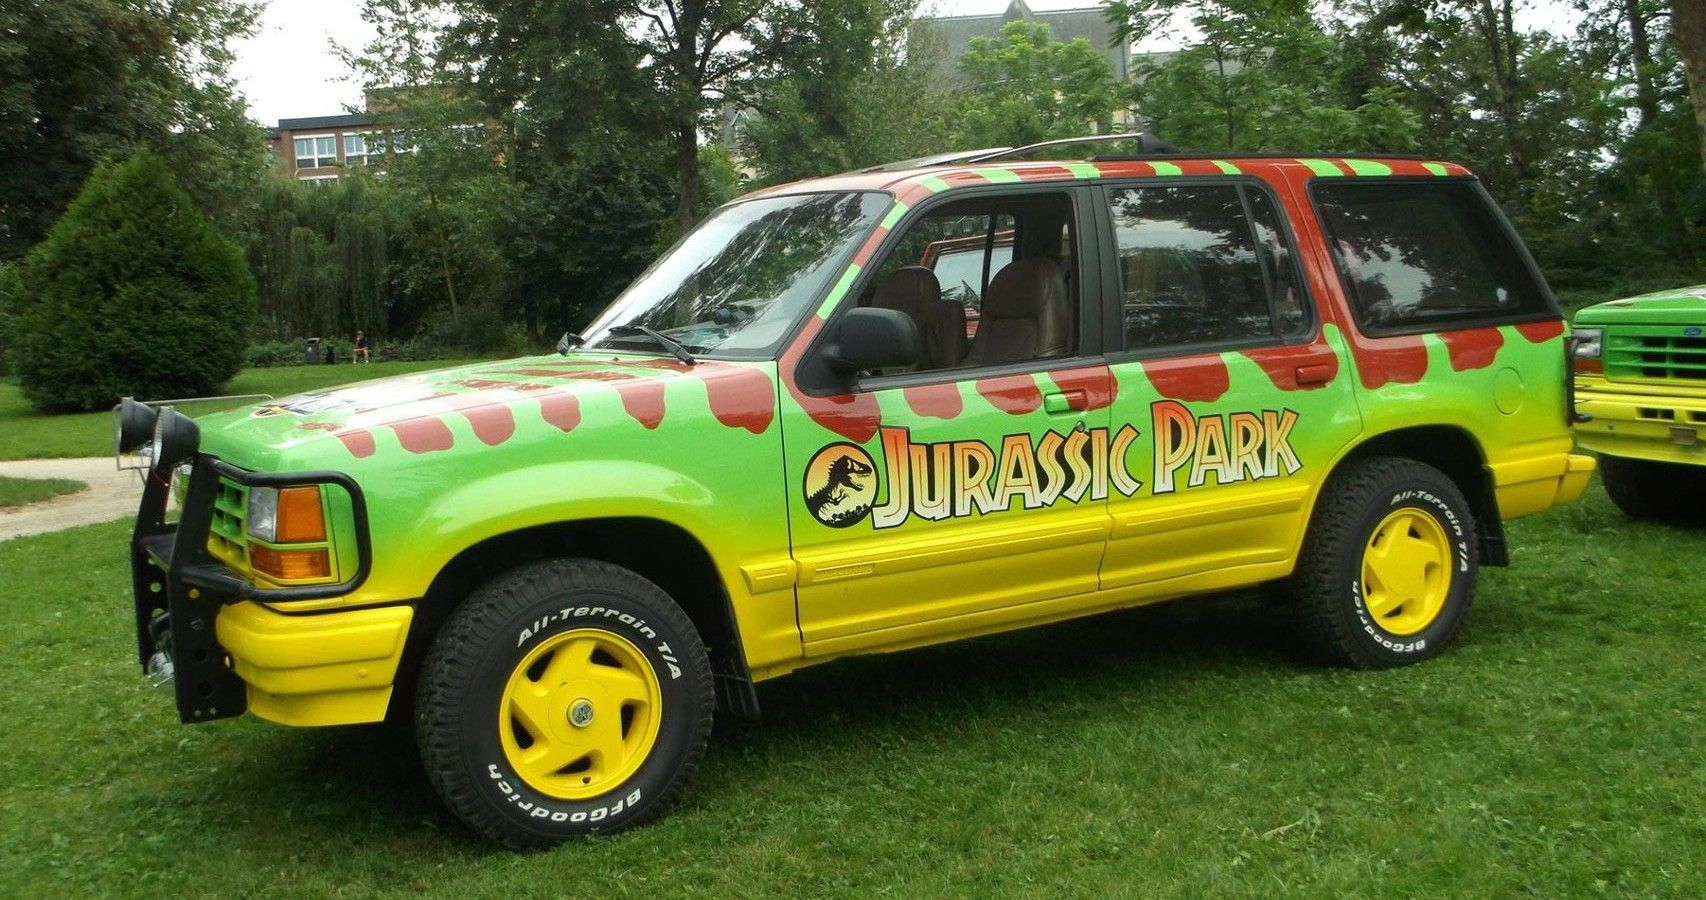 Here's What Happened To The Ford Explorer From Jurassic Park